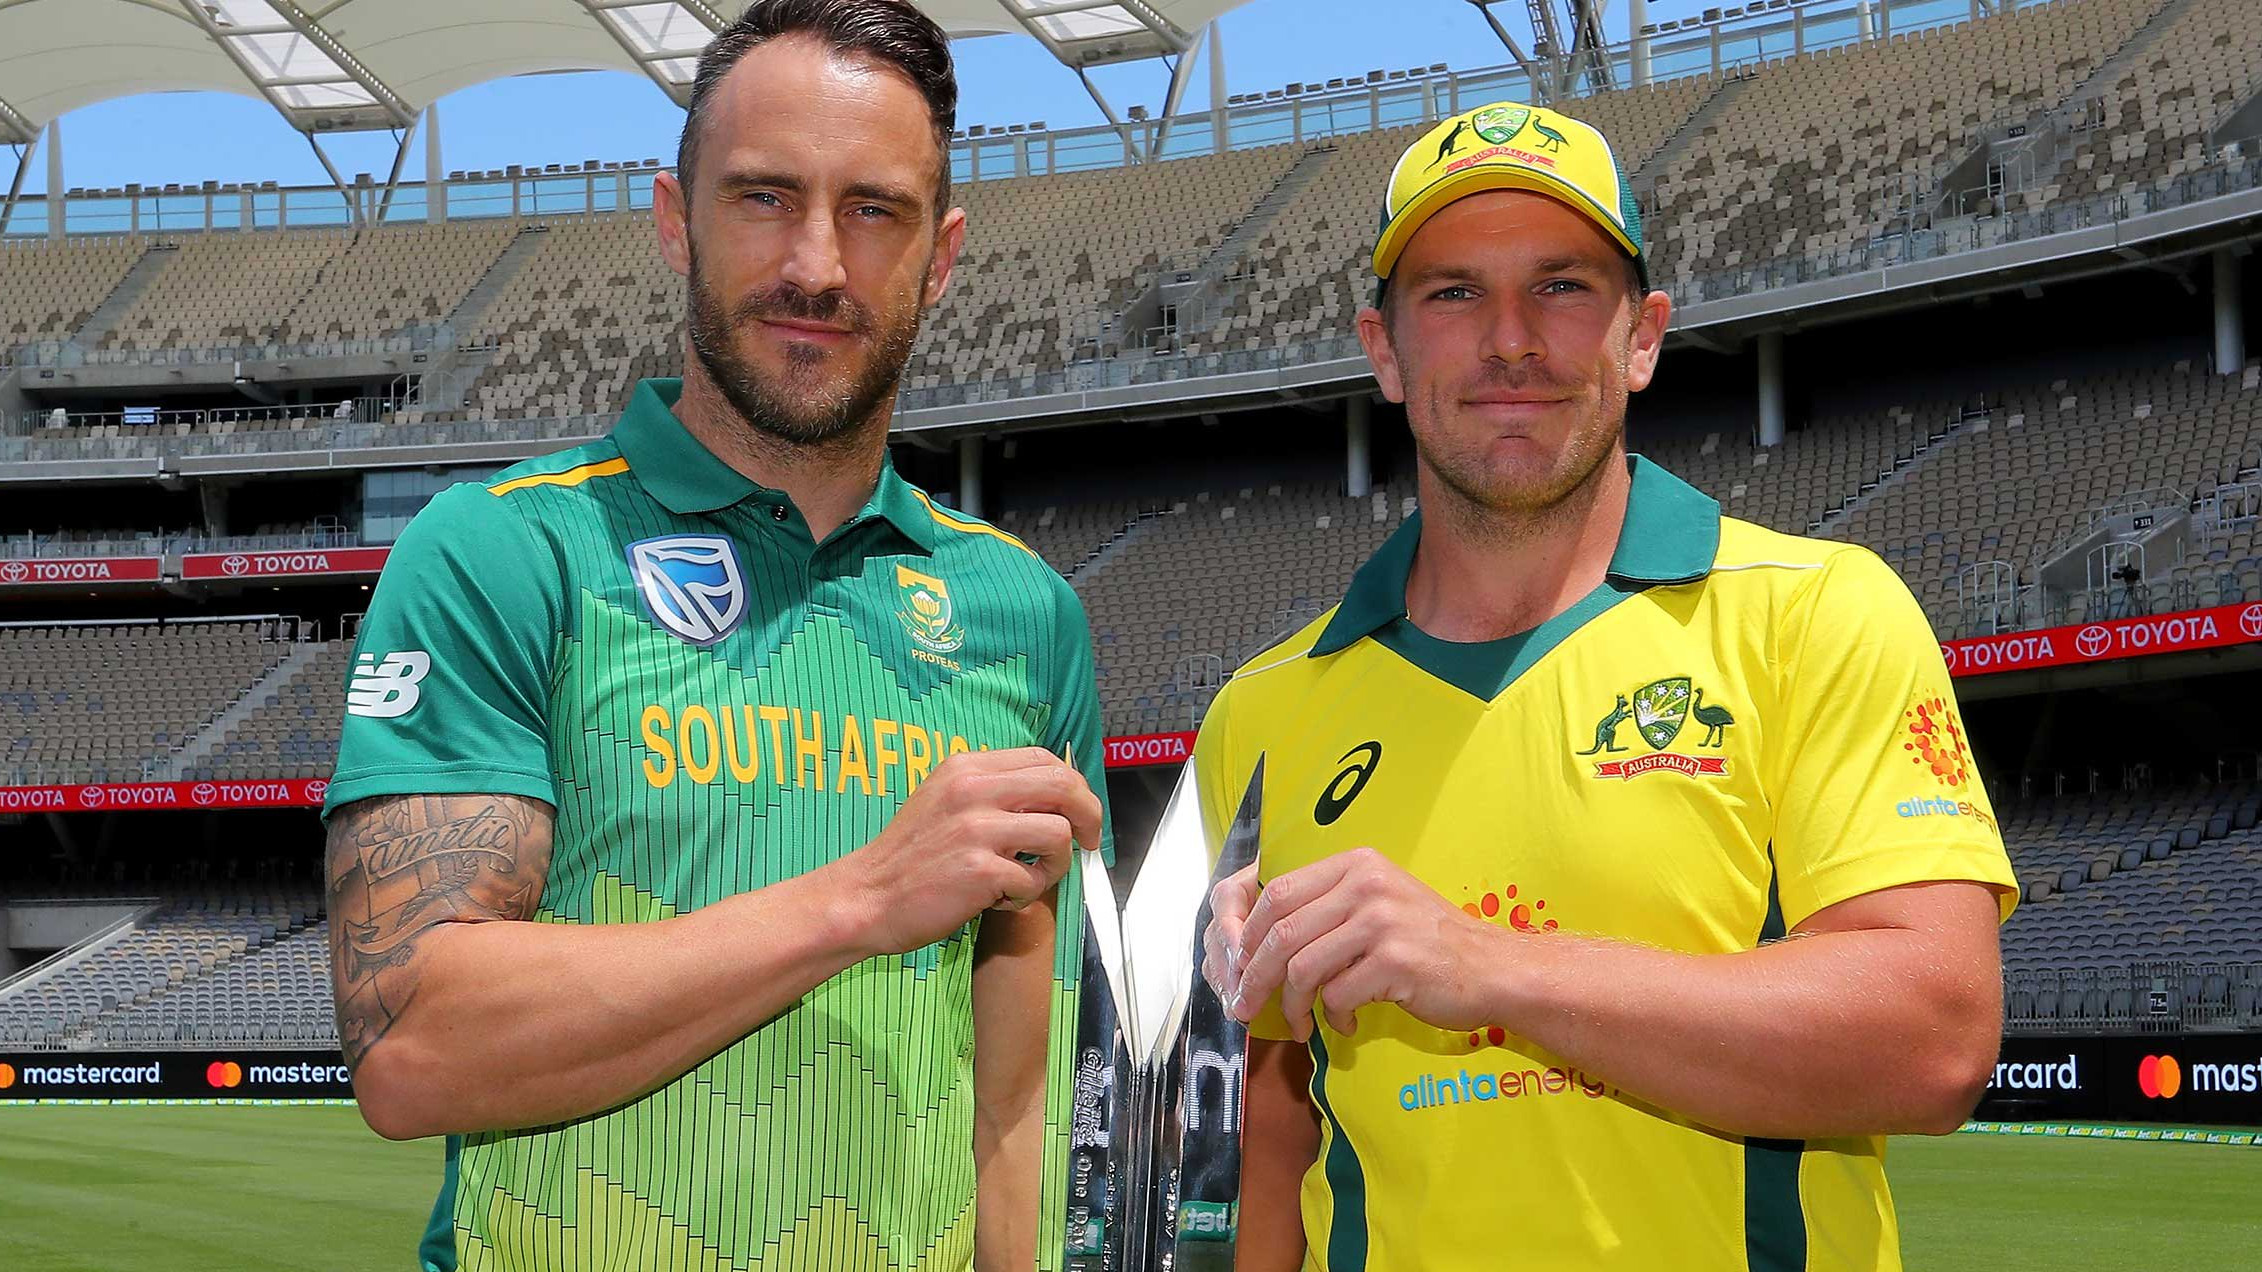 AUS v SA 2018: First ODI - Statistical Preview